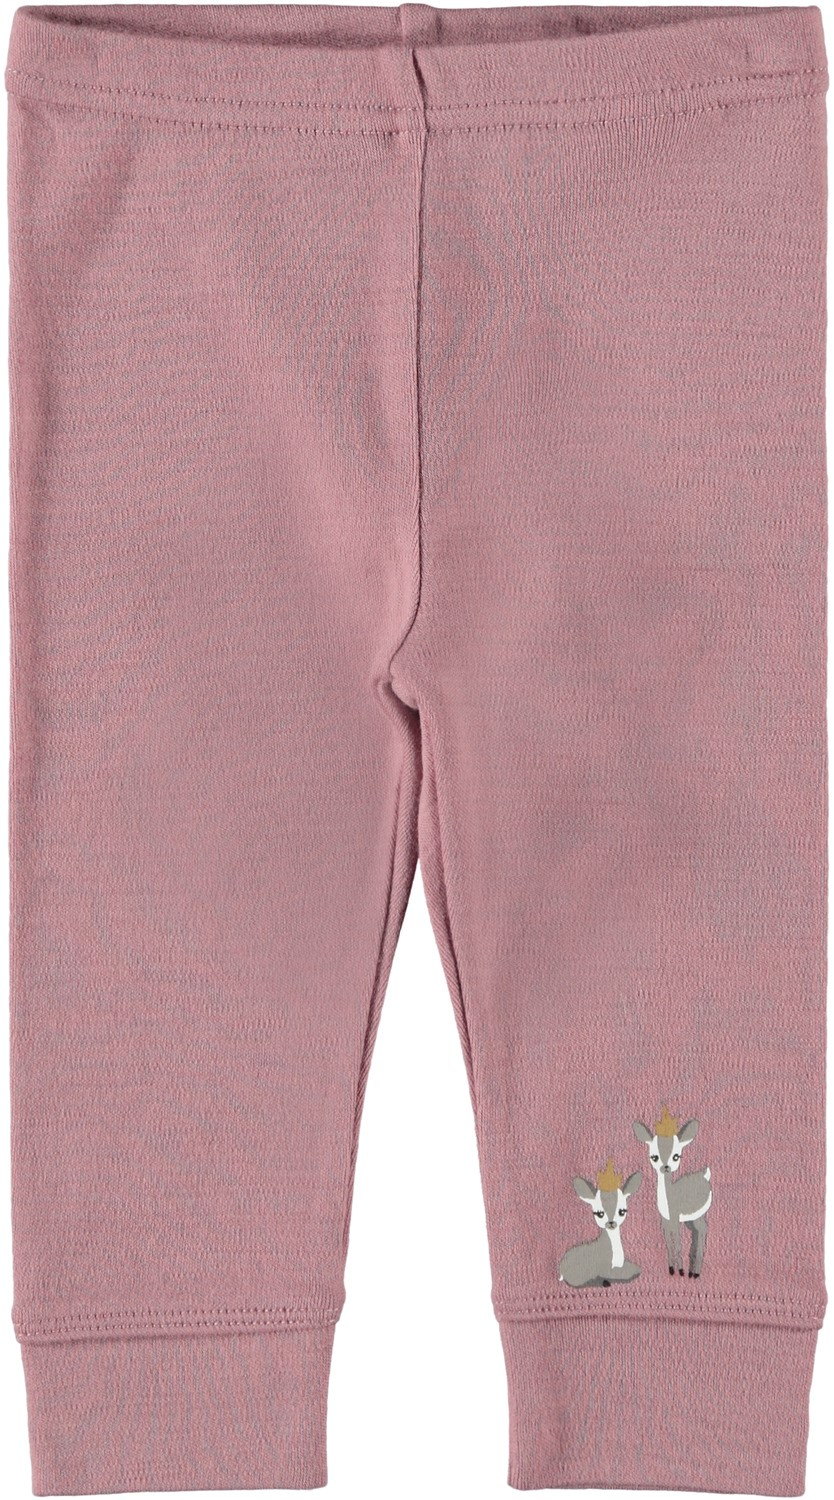 Leggings i ull Name It – Ull rosa leggings i ull Willow – Mio Trend